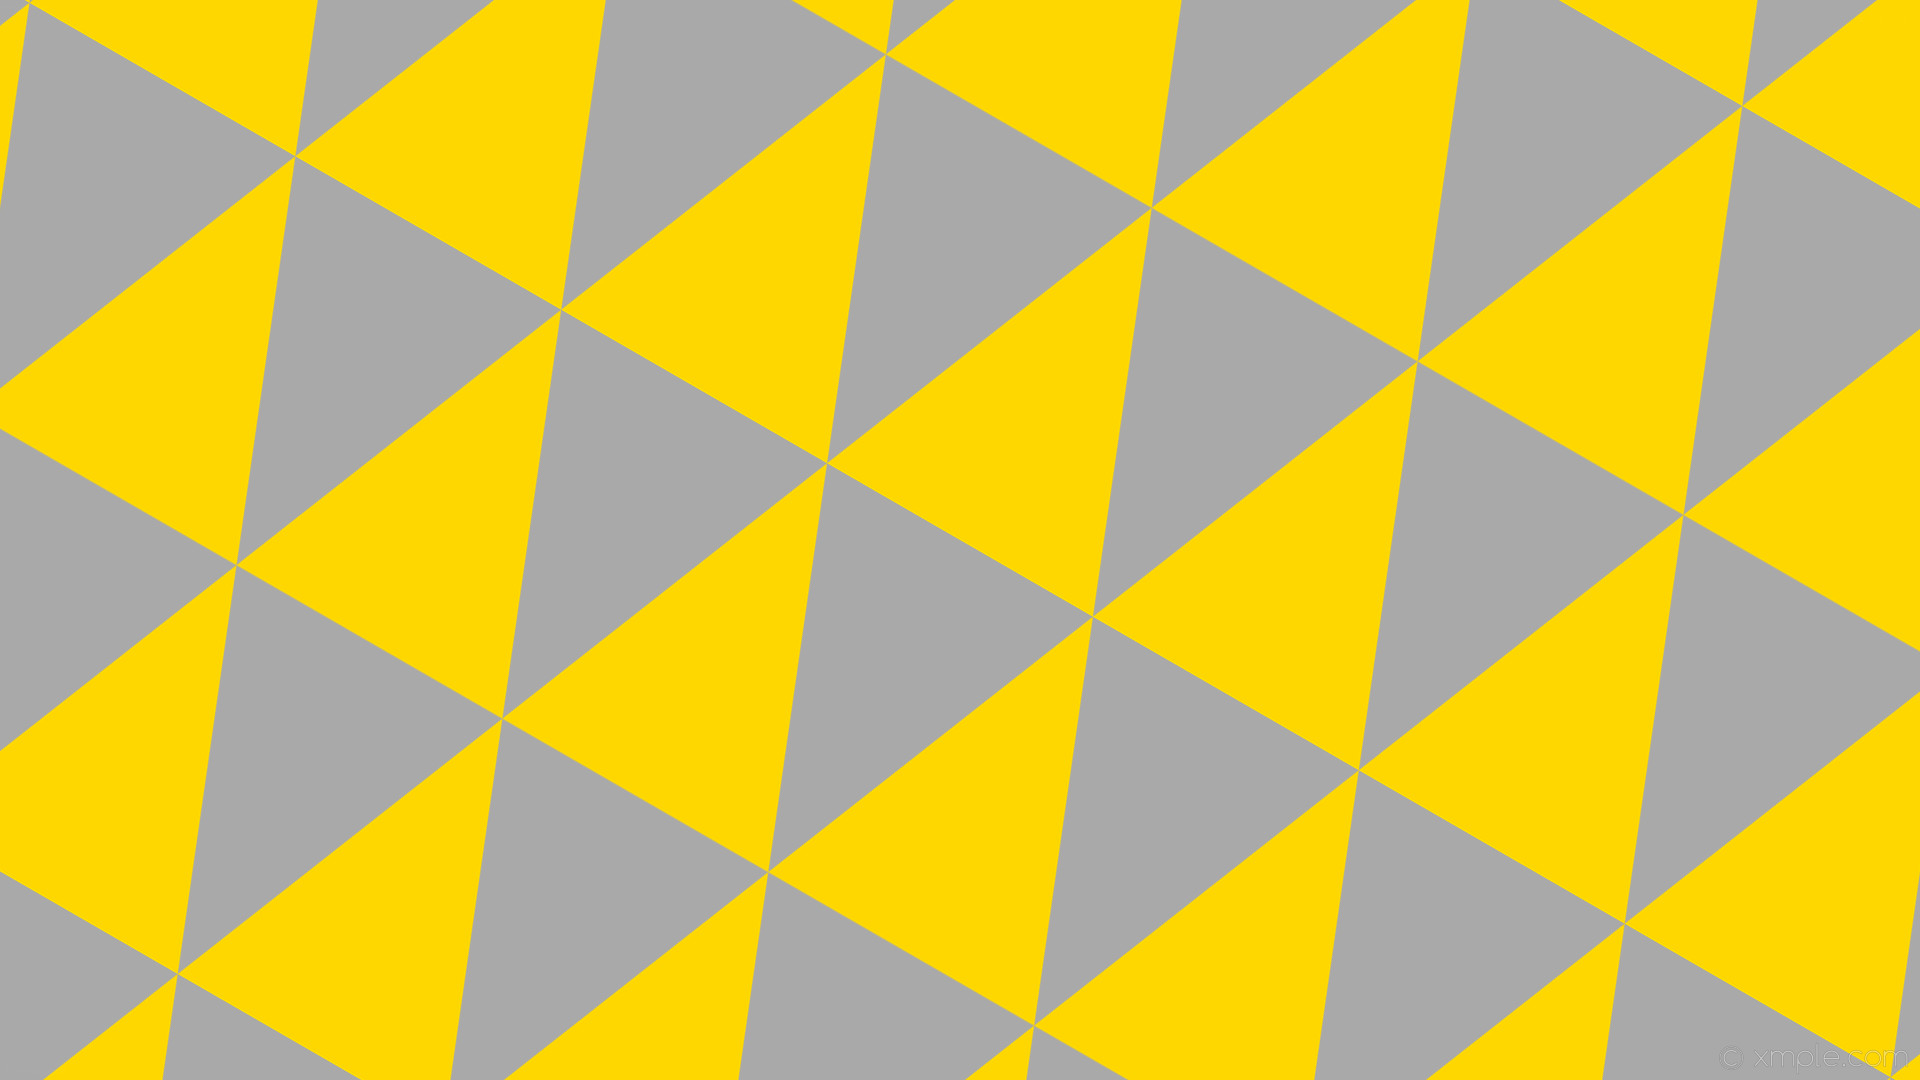 1920x1080 wallpaper yellow grey triangle dark gray gold #a9a9a9 #ffd700 330° 307px  767px